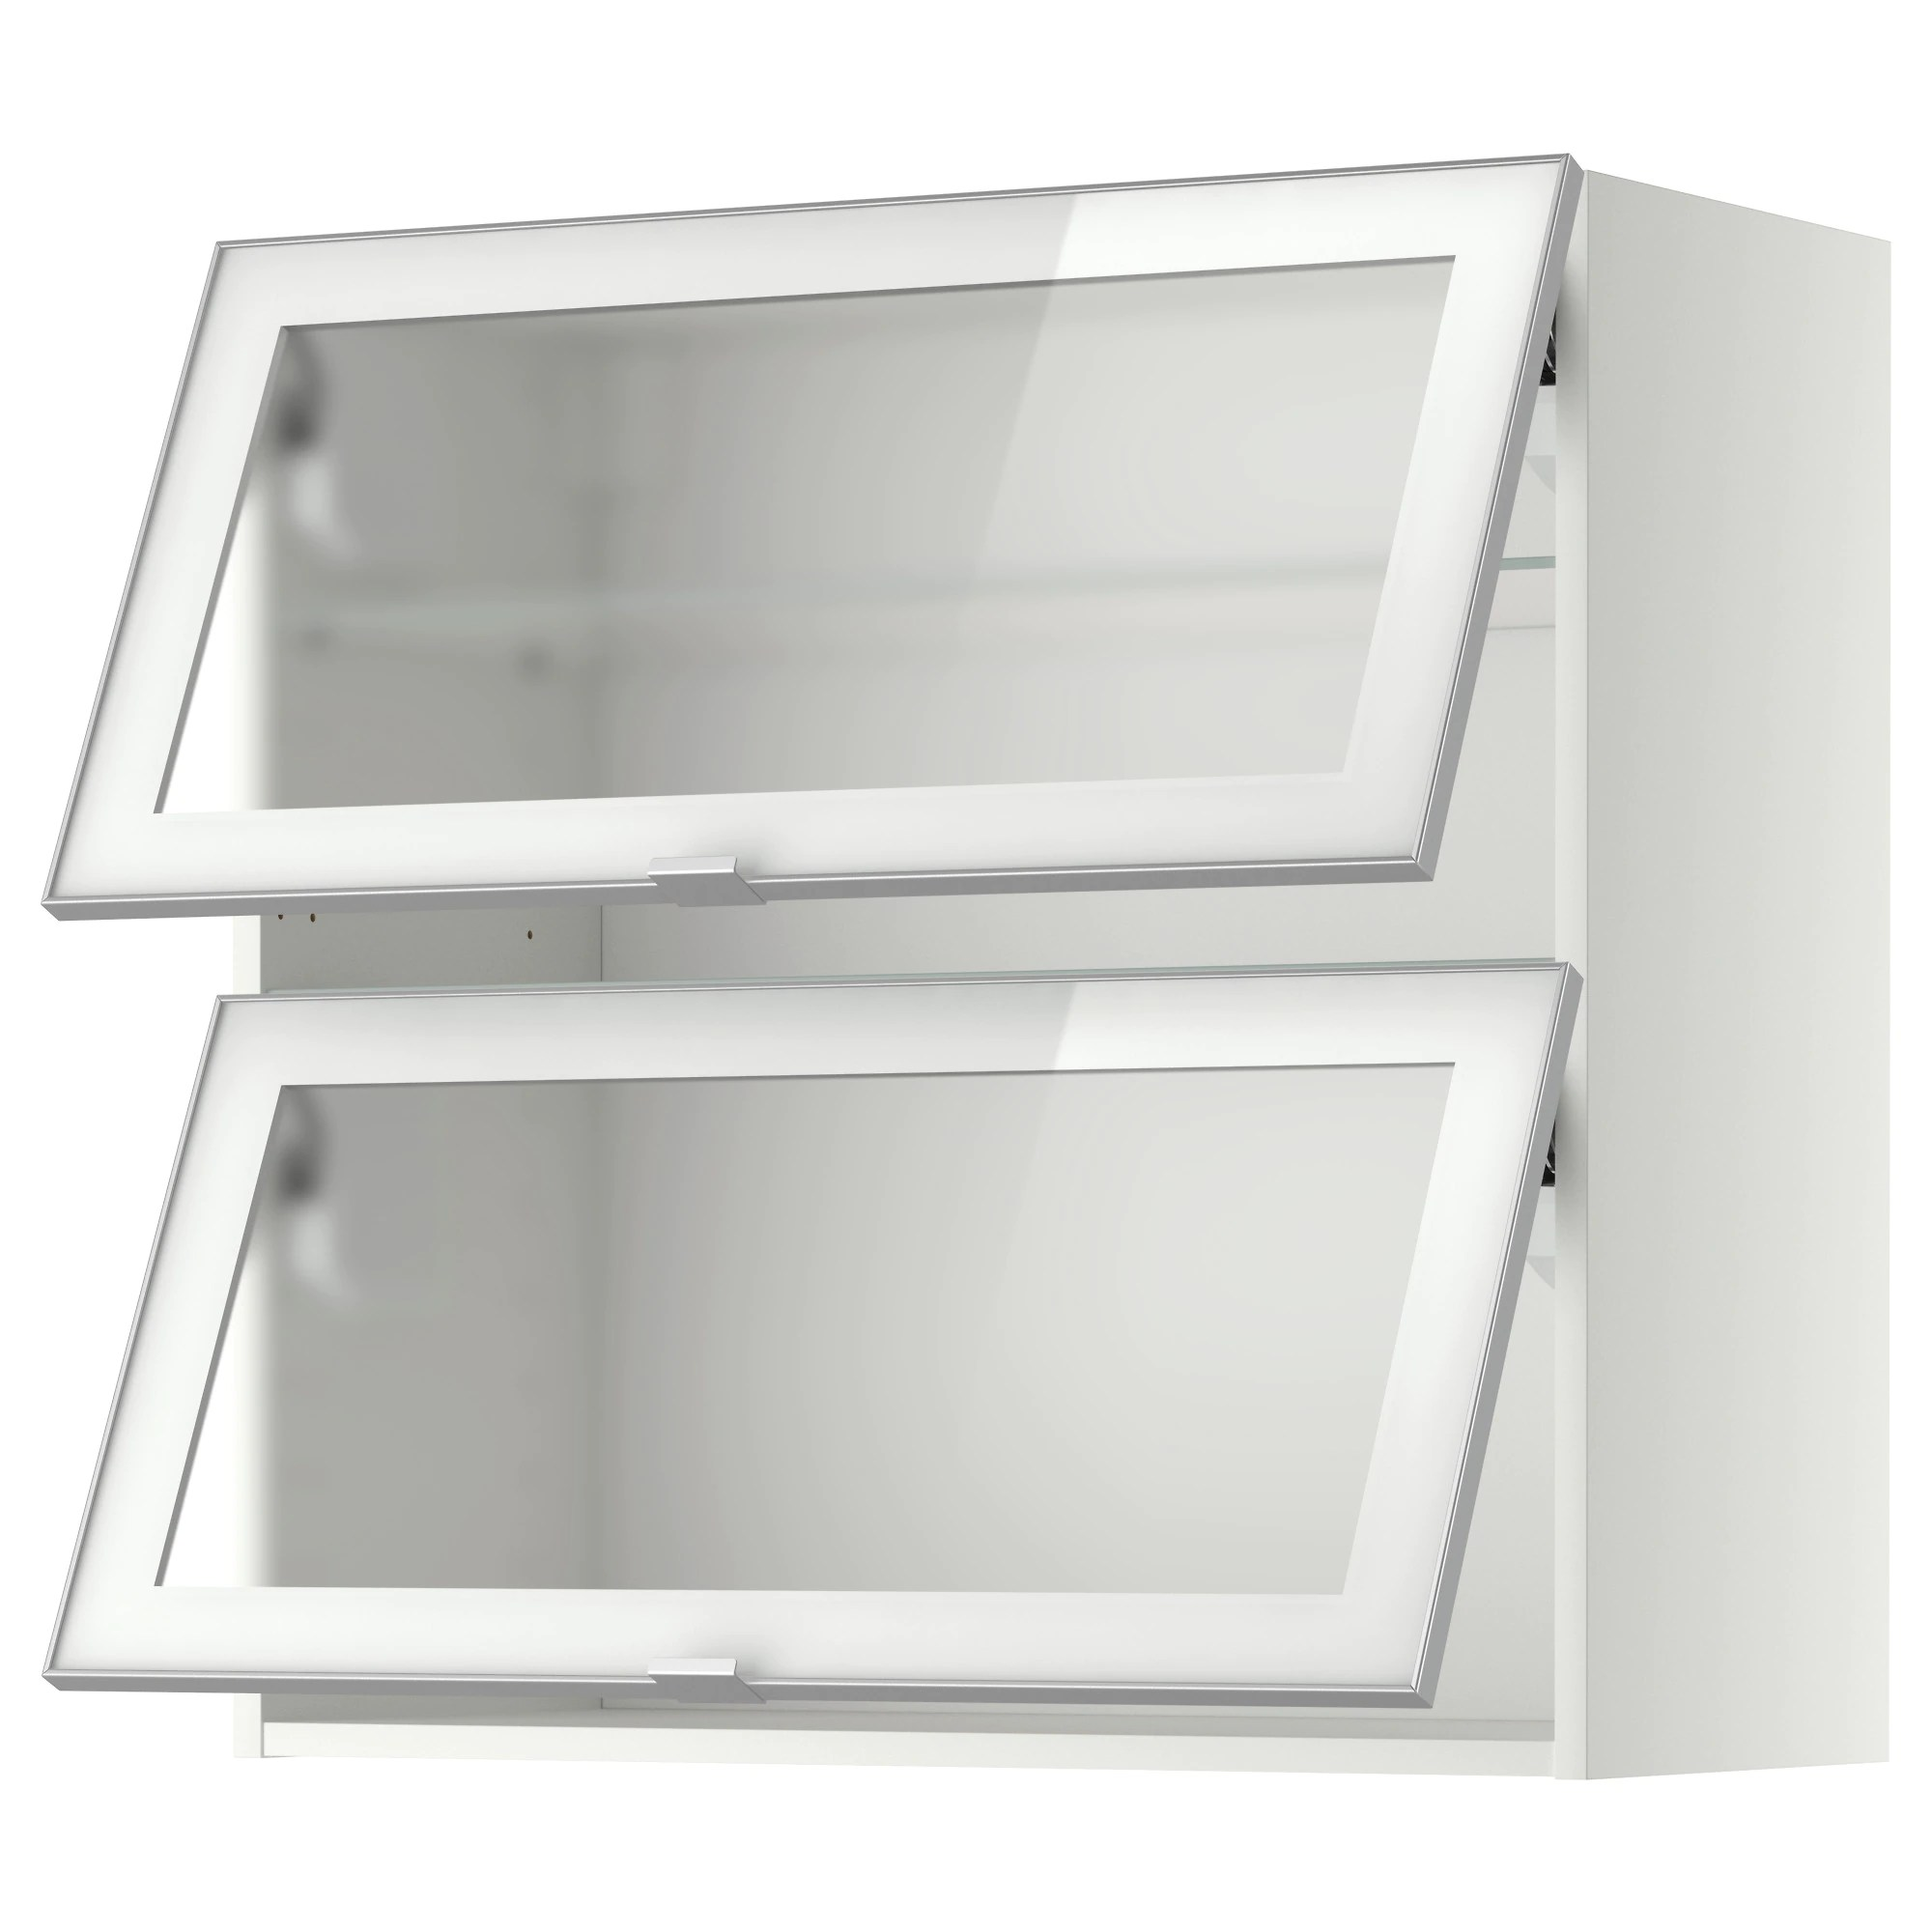 Metod Ikea Hängeschrank Metod Wall Cab Horizontal W 2 Glass Doors White Jutis Smoked Glass